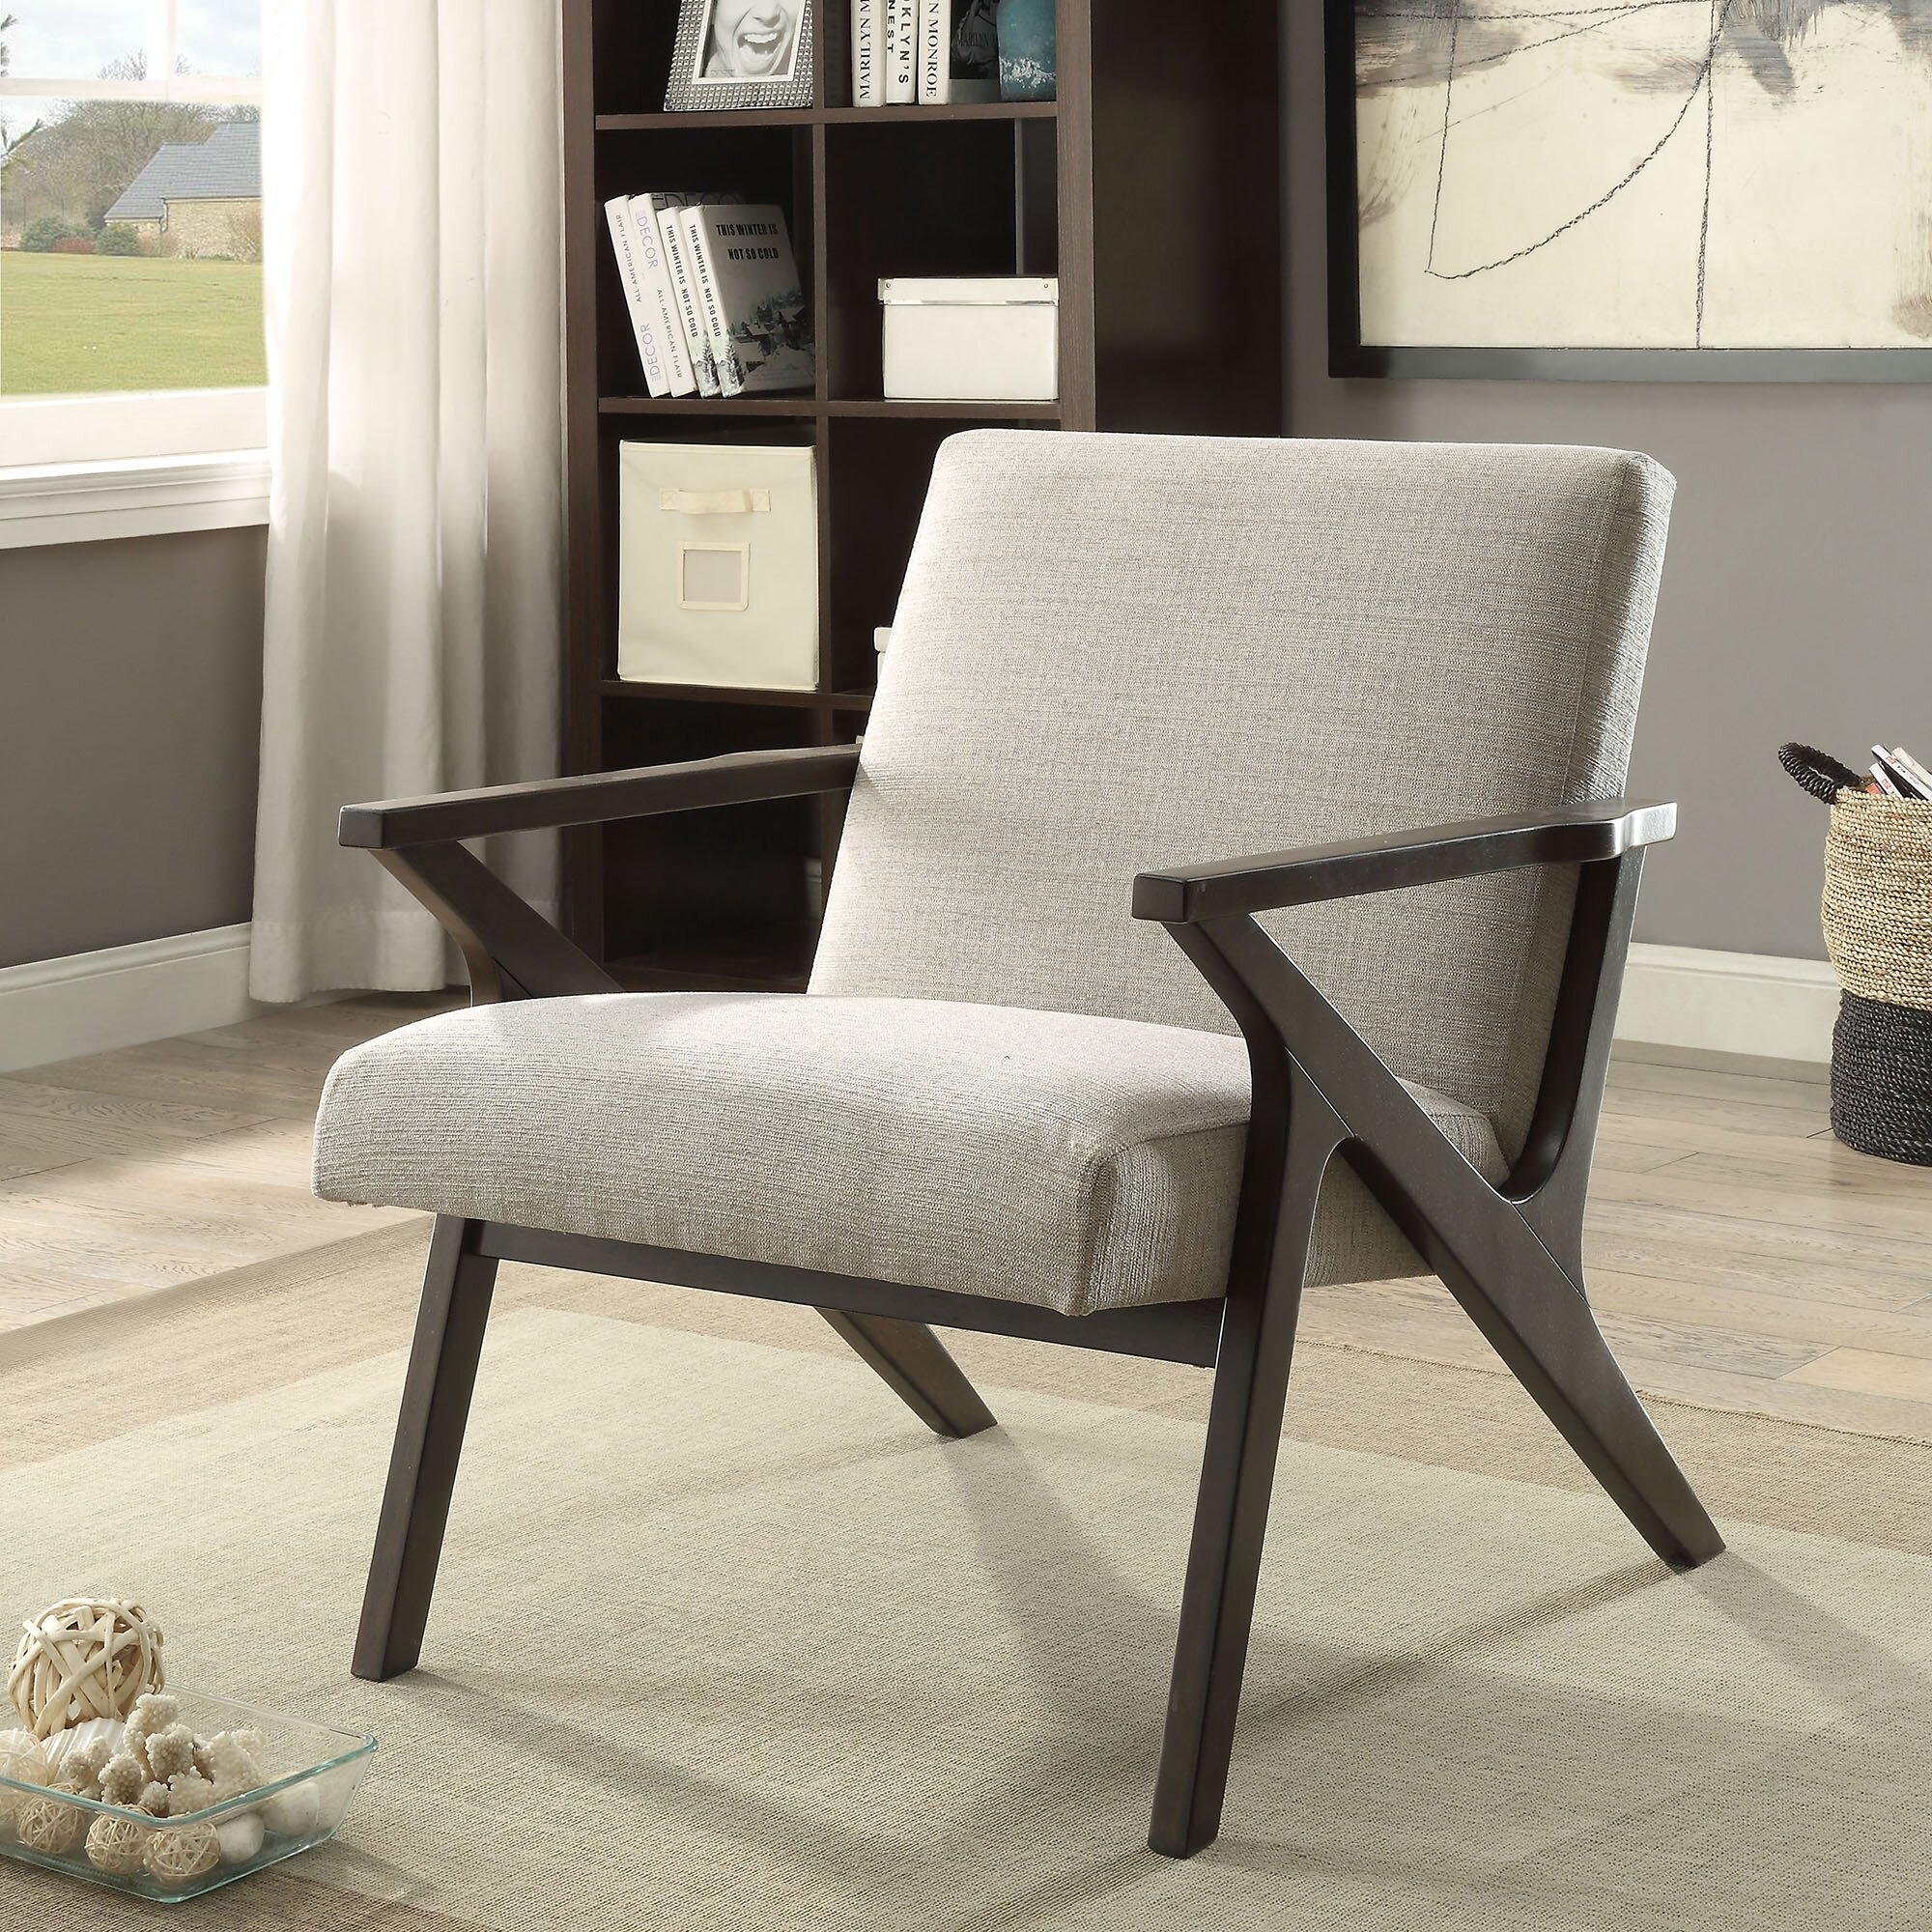 Nspire Upholstered Accent Arm Chair Amp Reviews Wayfair Ca